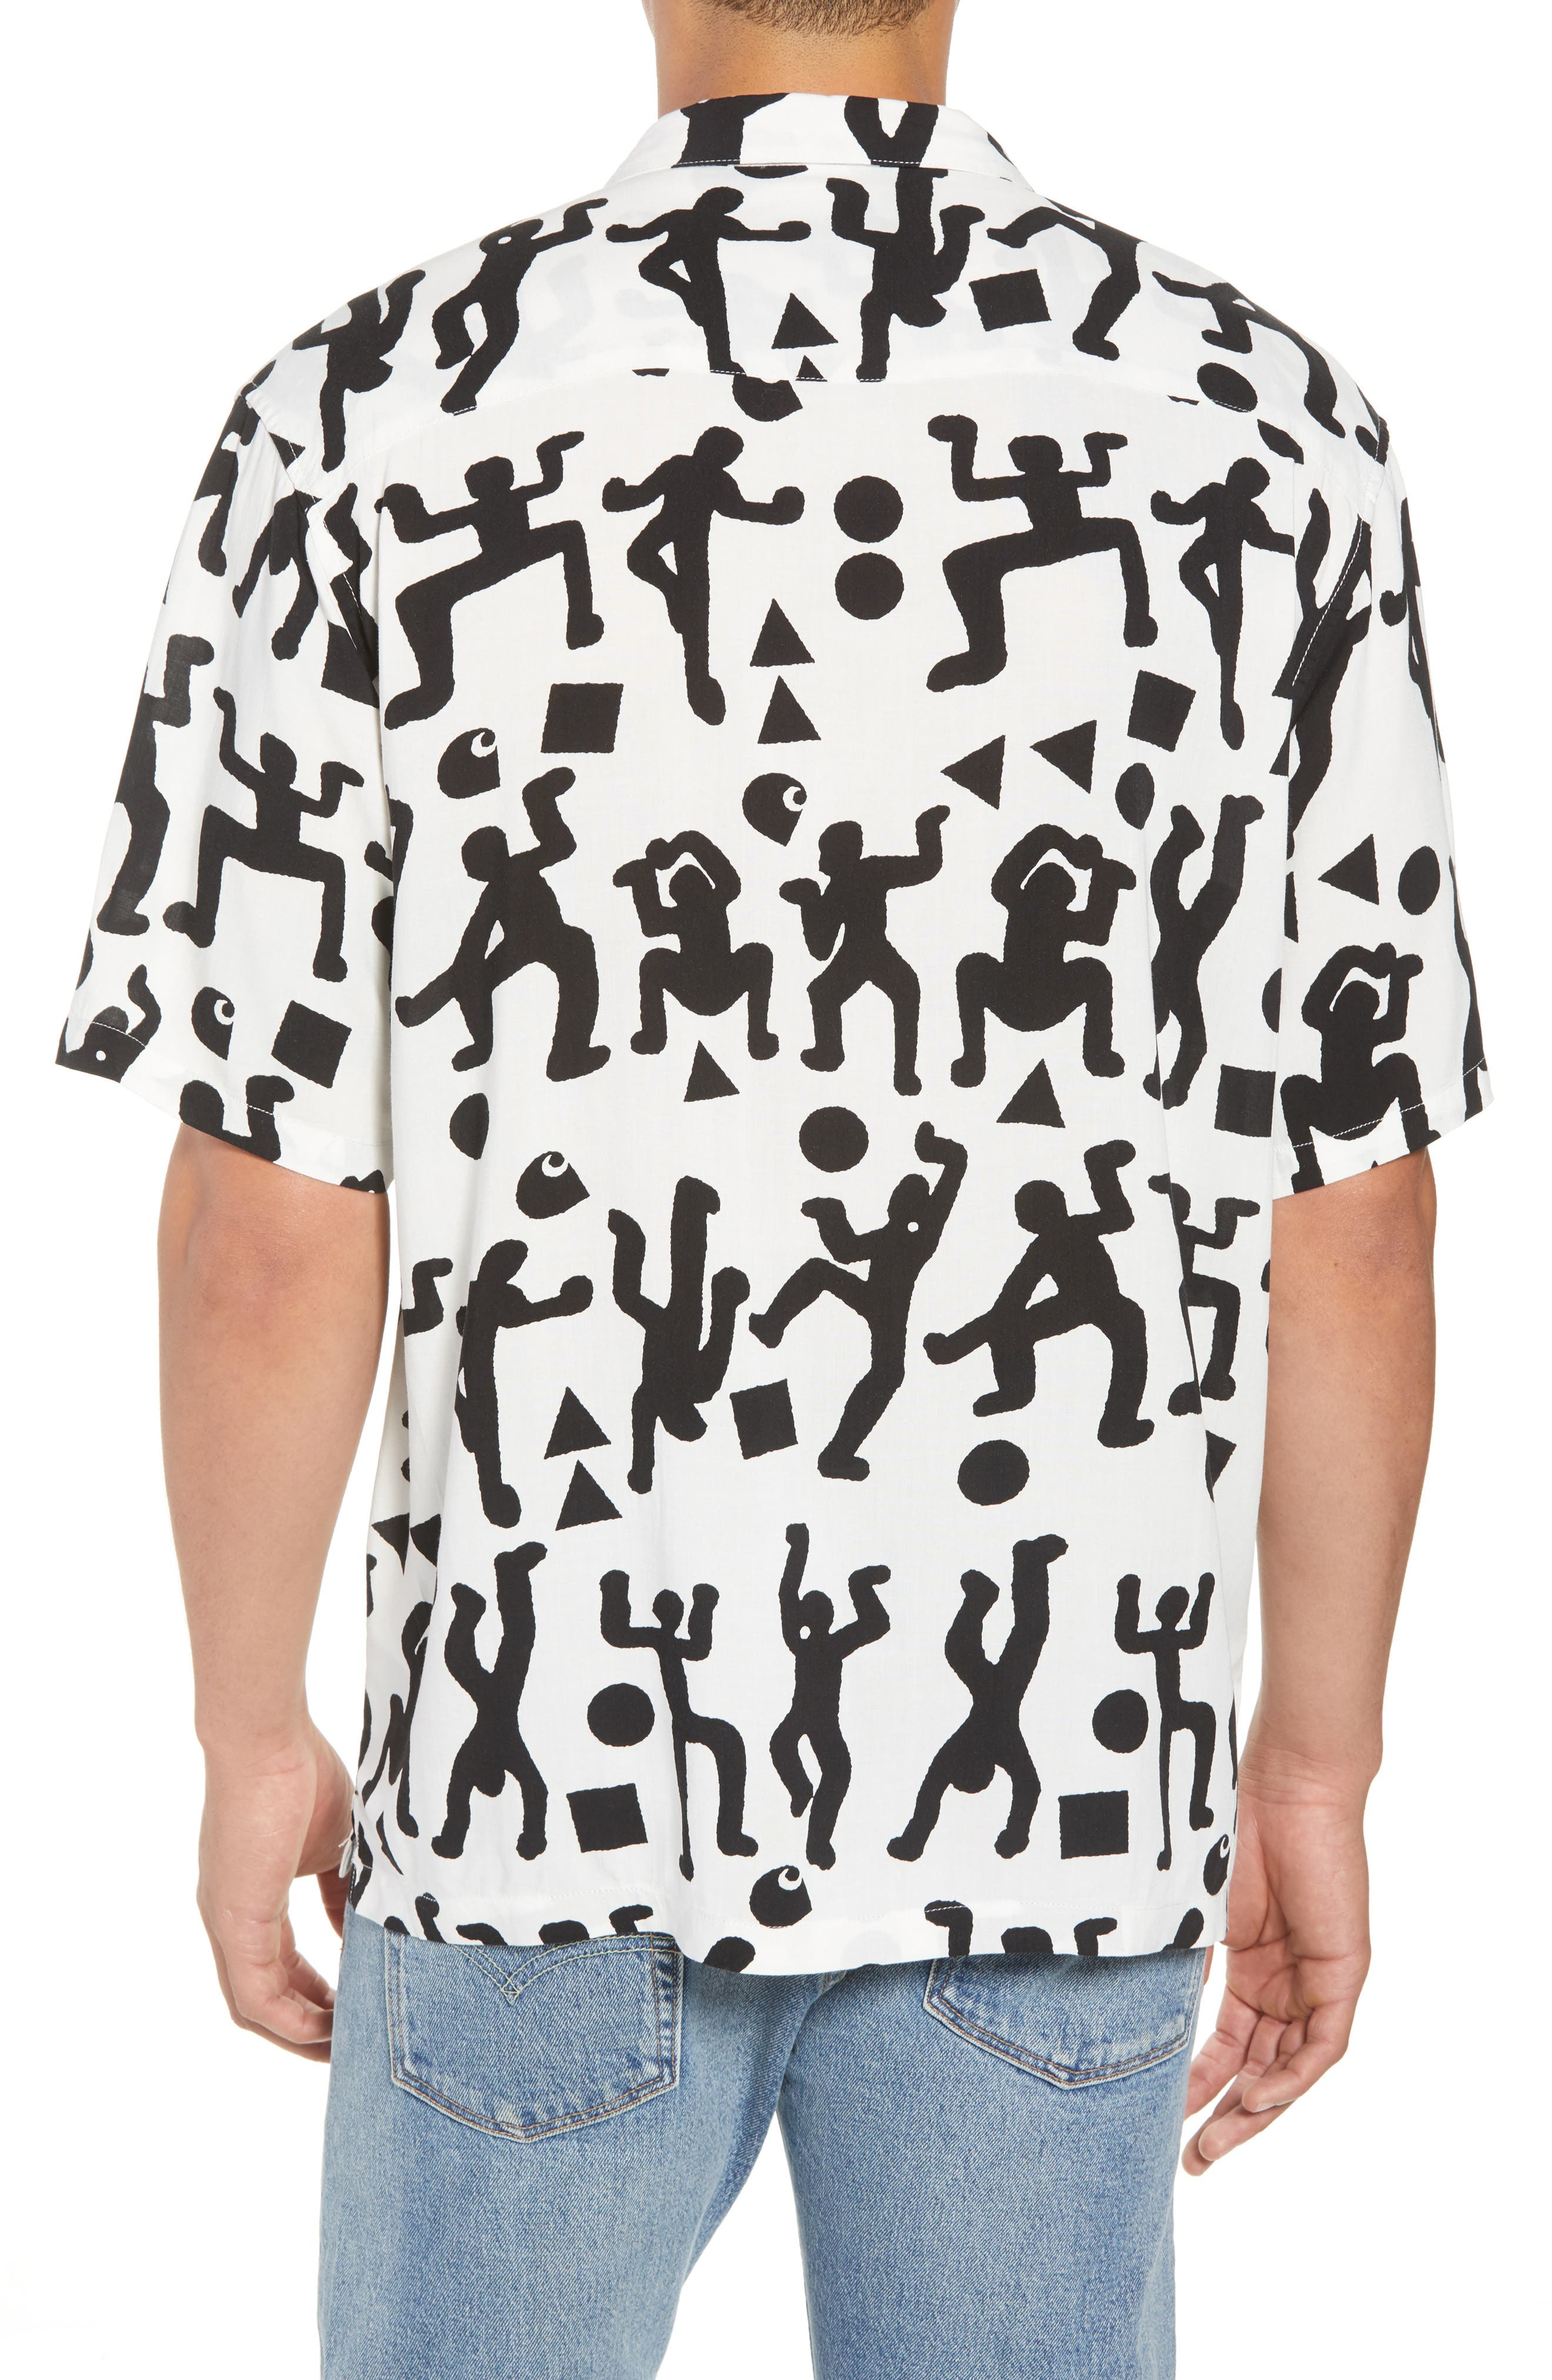 World Party Woven Shirt,                             Alternate thumbnail 3, color,                             World Party Print Black/ White